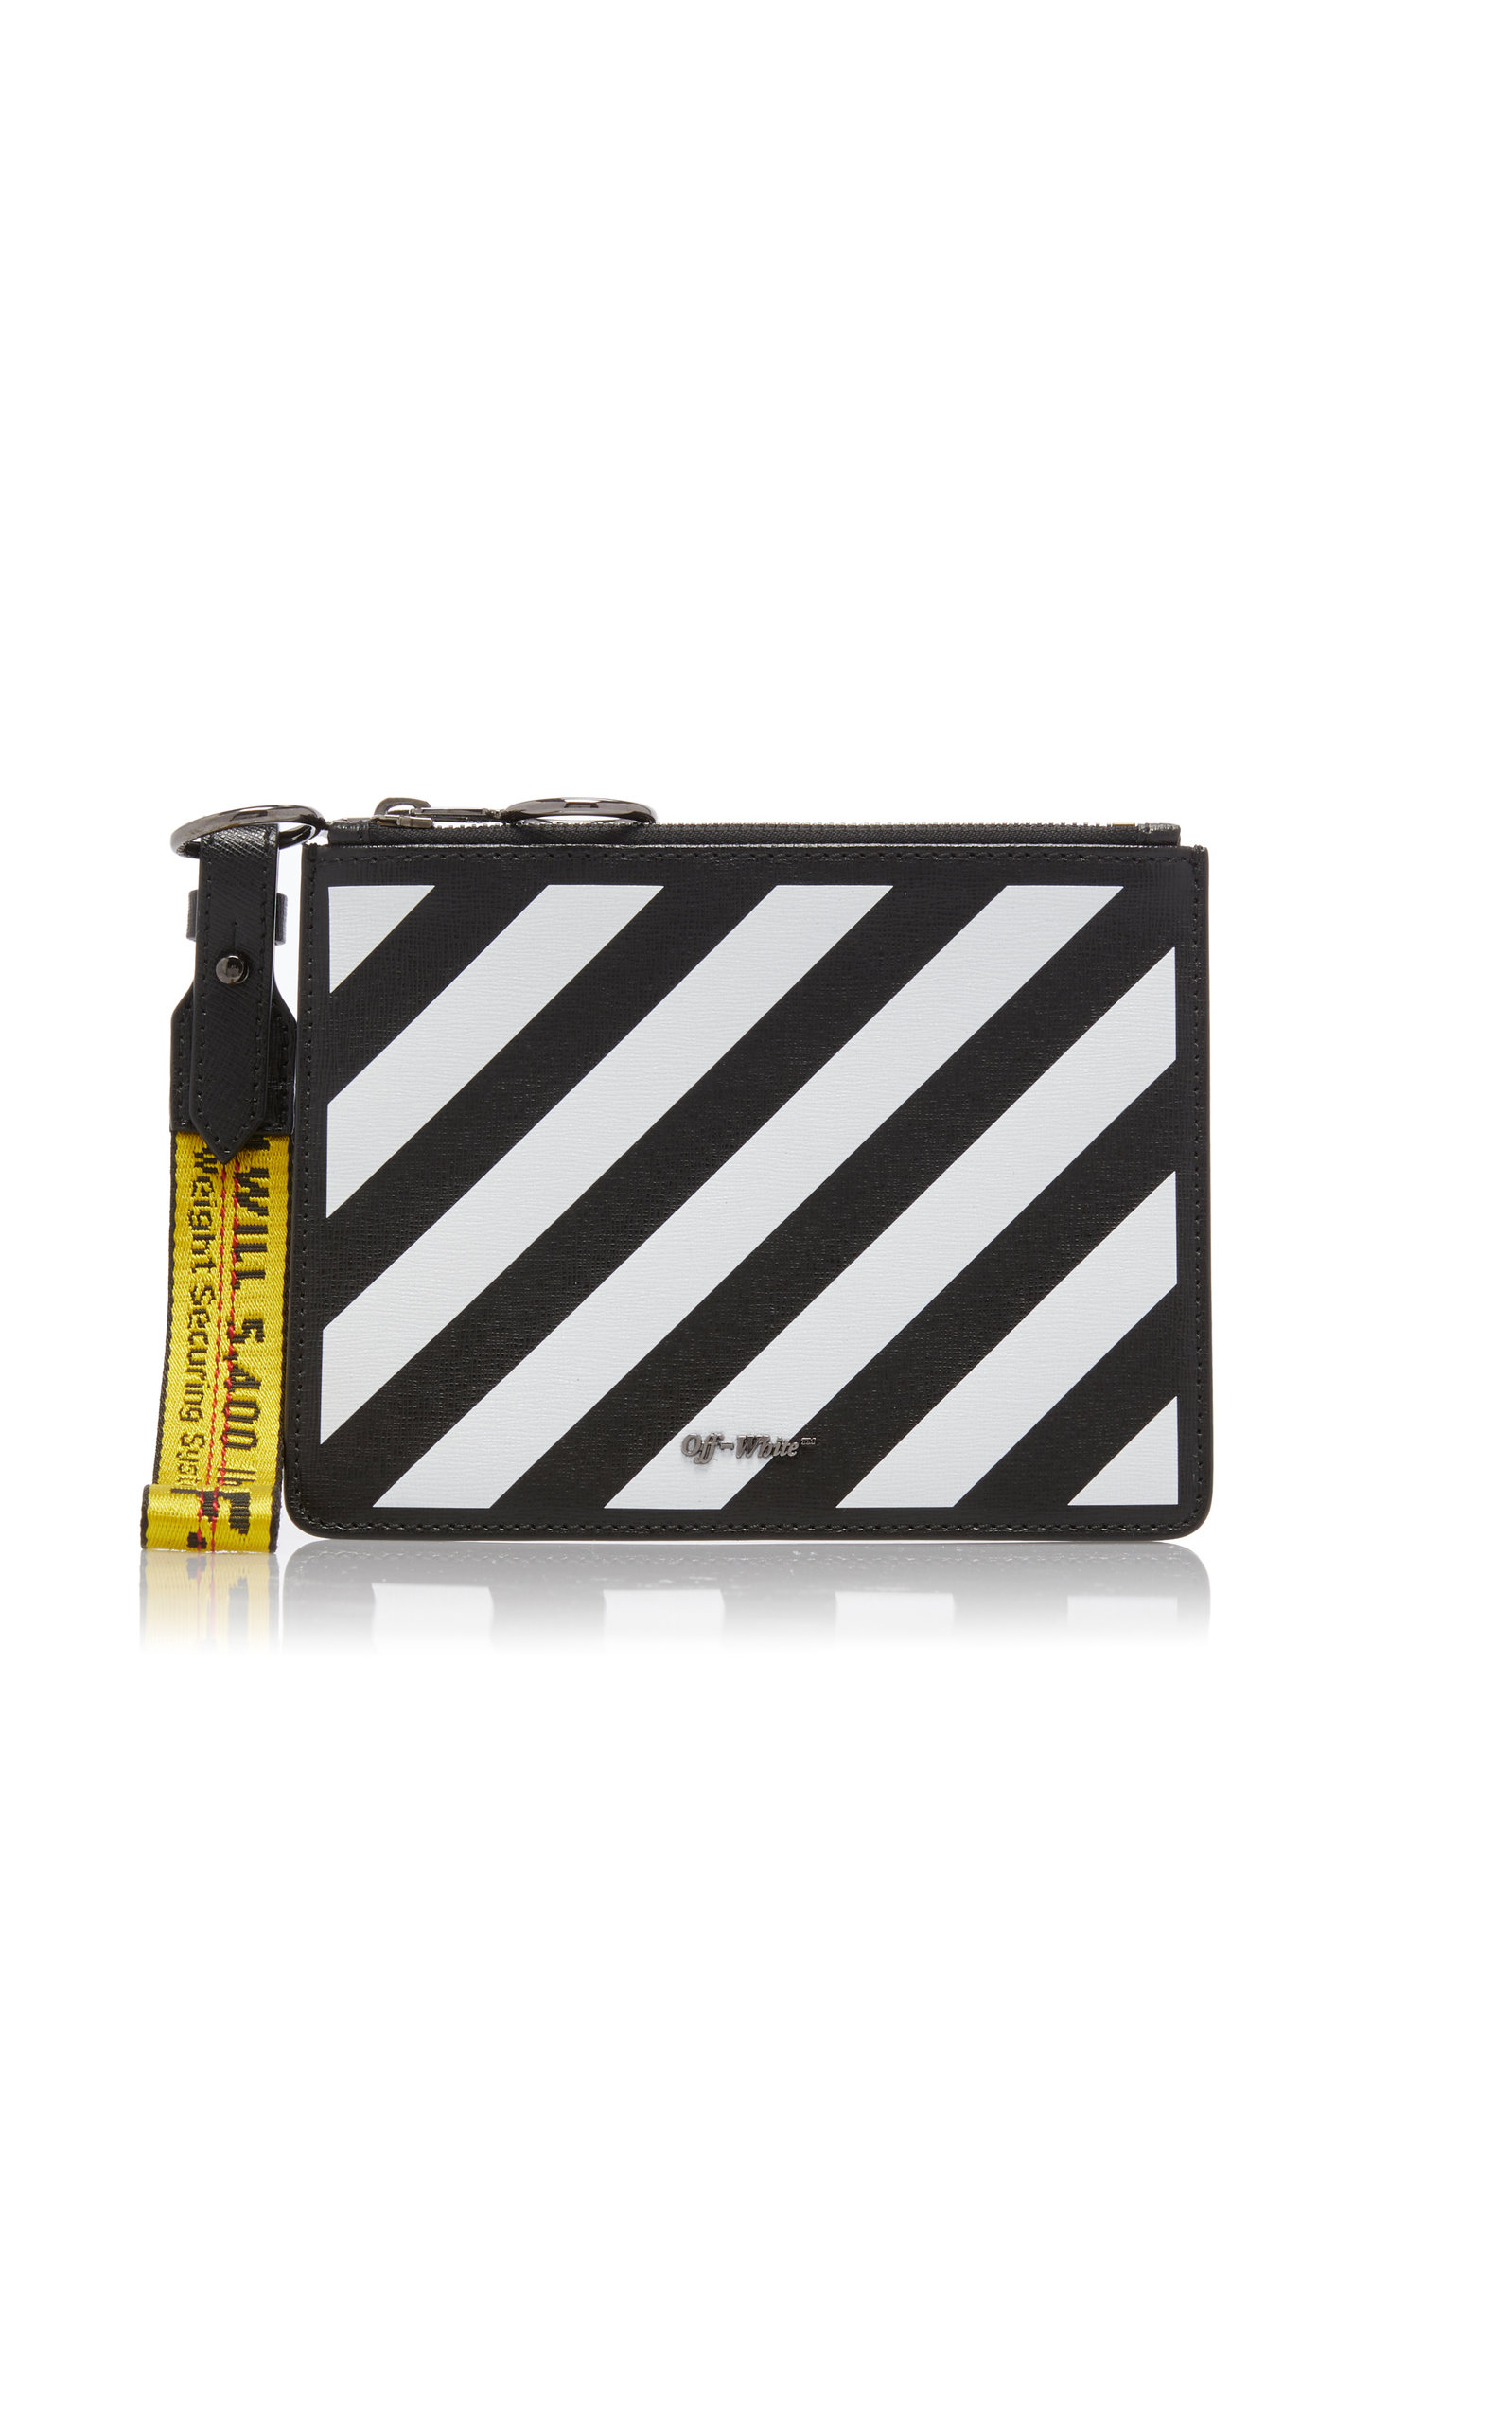 f9cd32c59a0 Off-White c o Virgil AblohDiag Double Flat Pouch. CLOSE. Loading